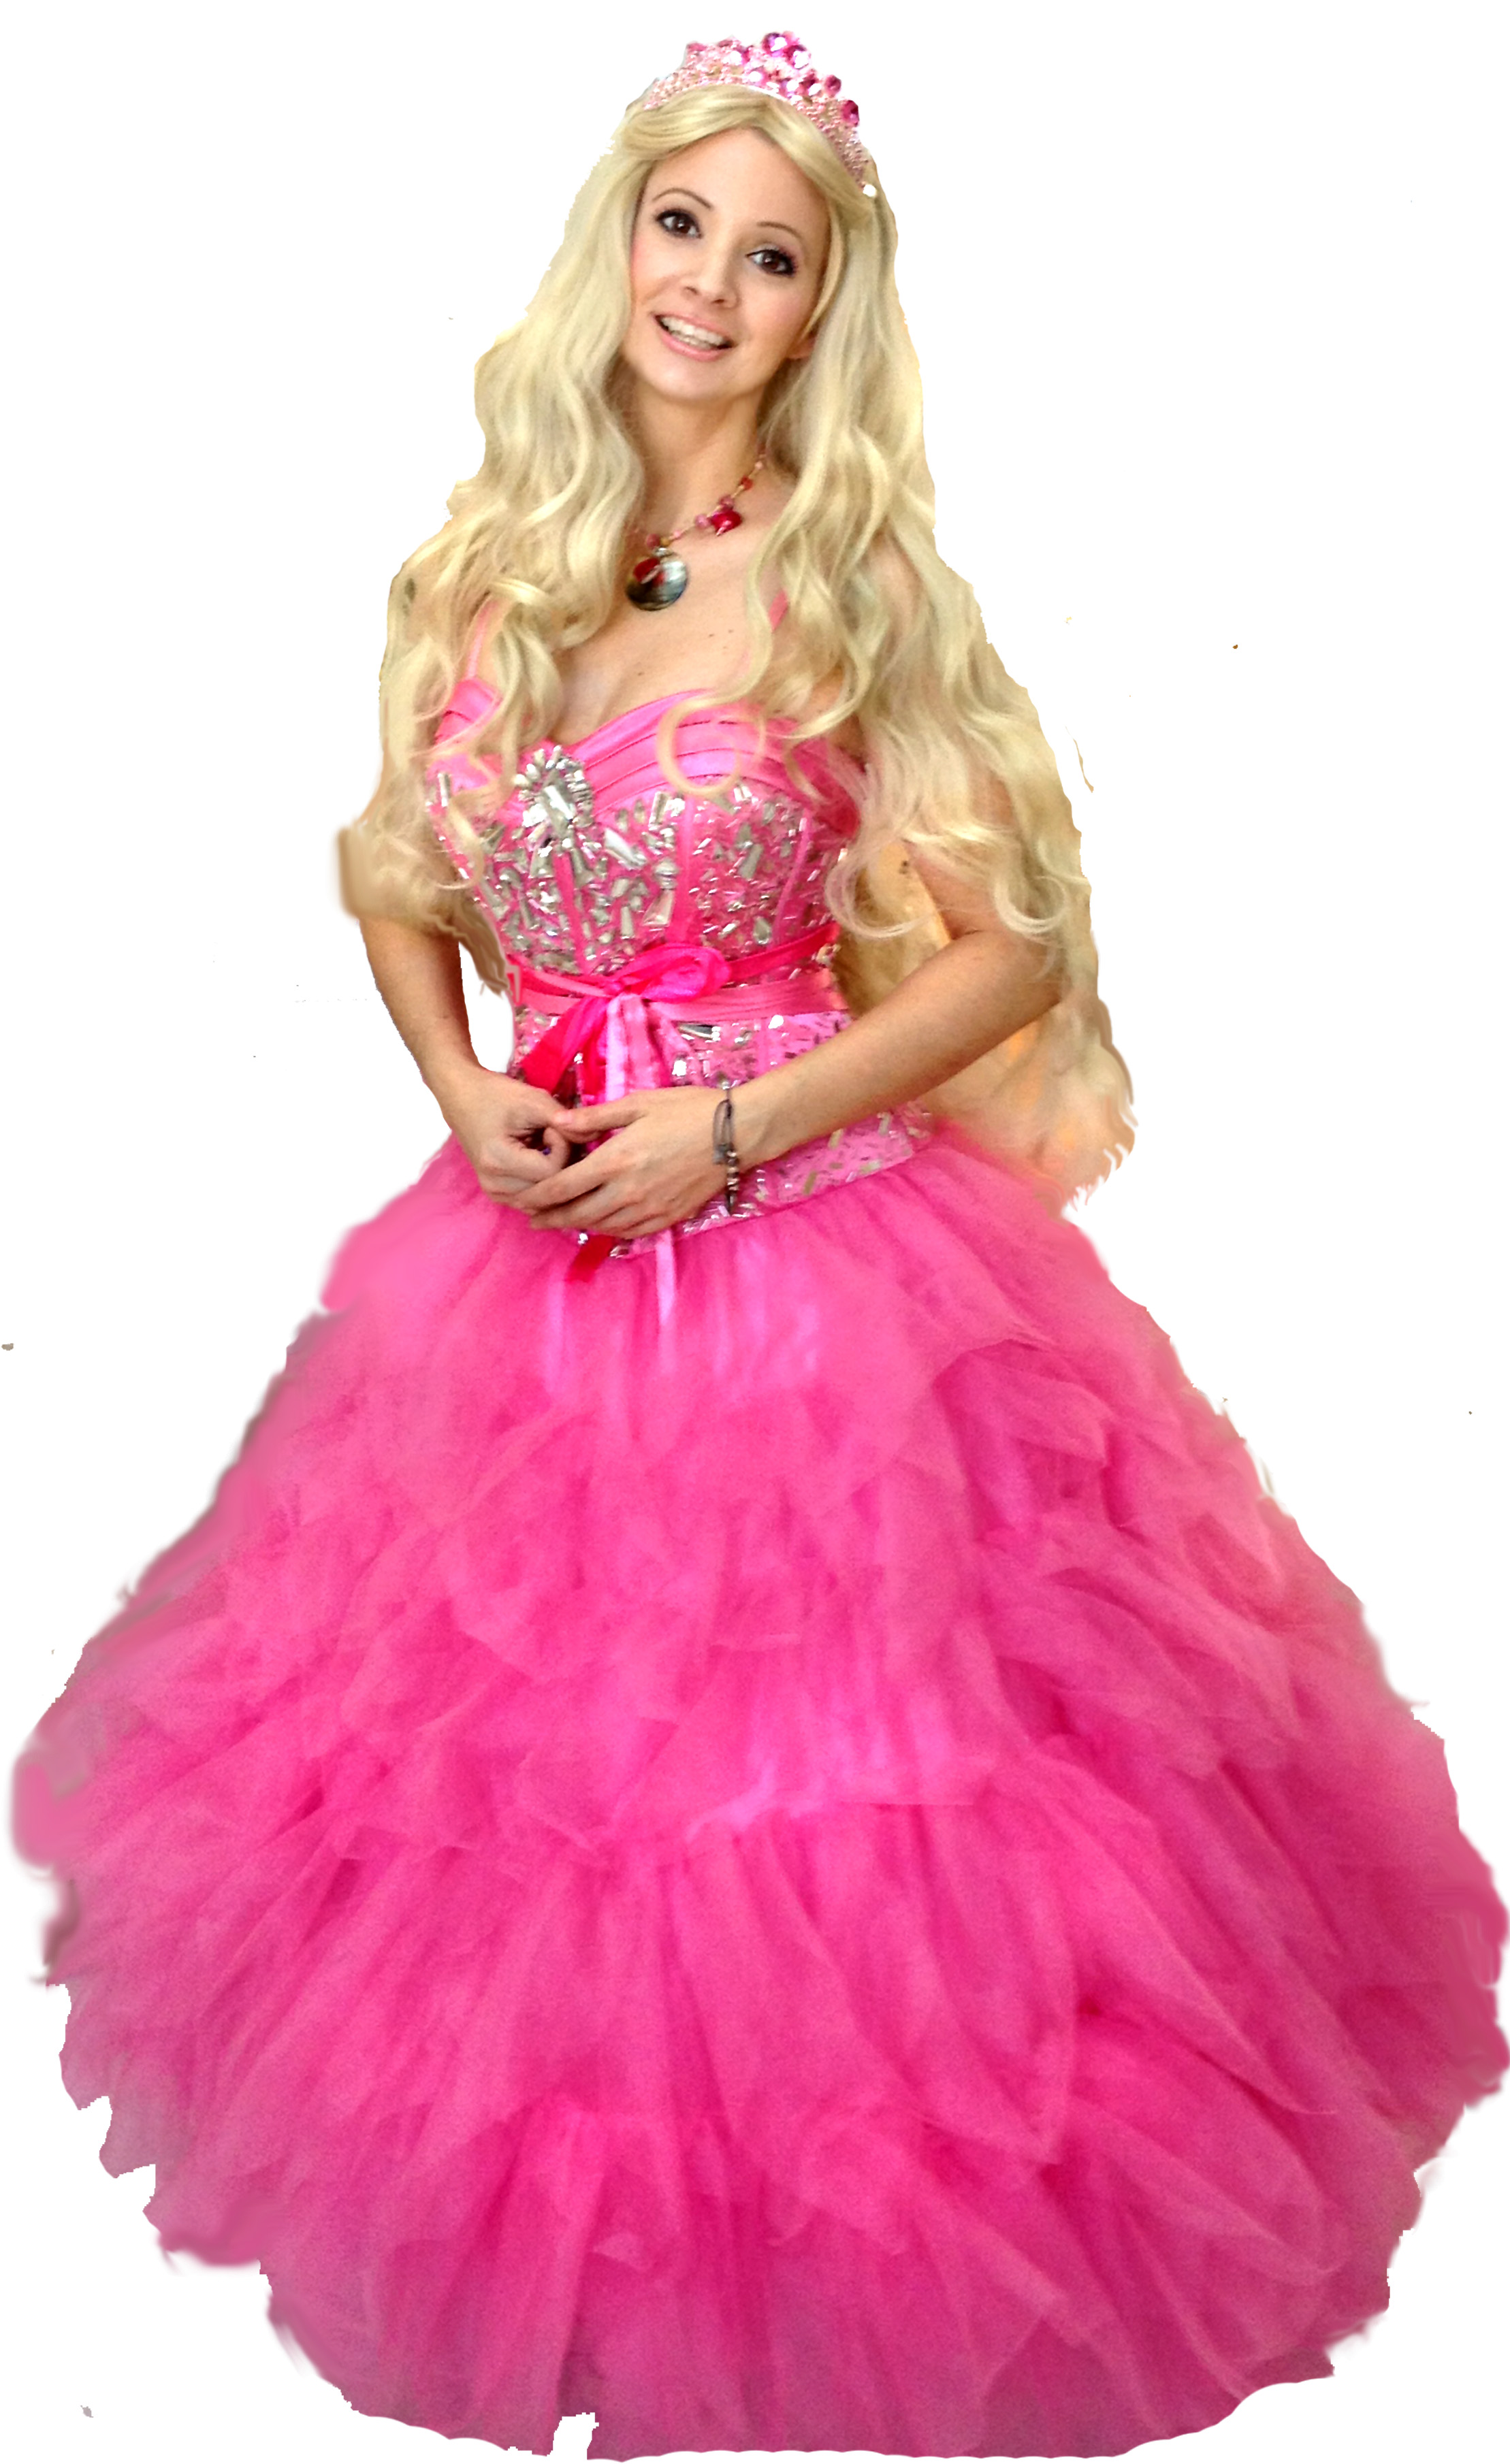 Uncategorized Barbie Popstar index of imagesprincess sitebarbie pop star barbie popstar no